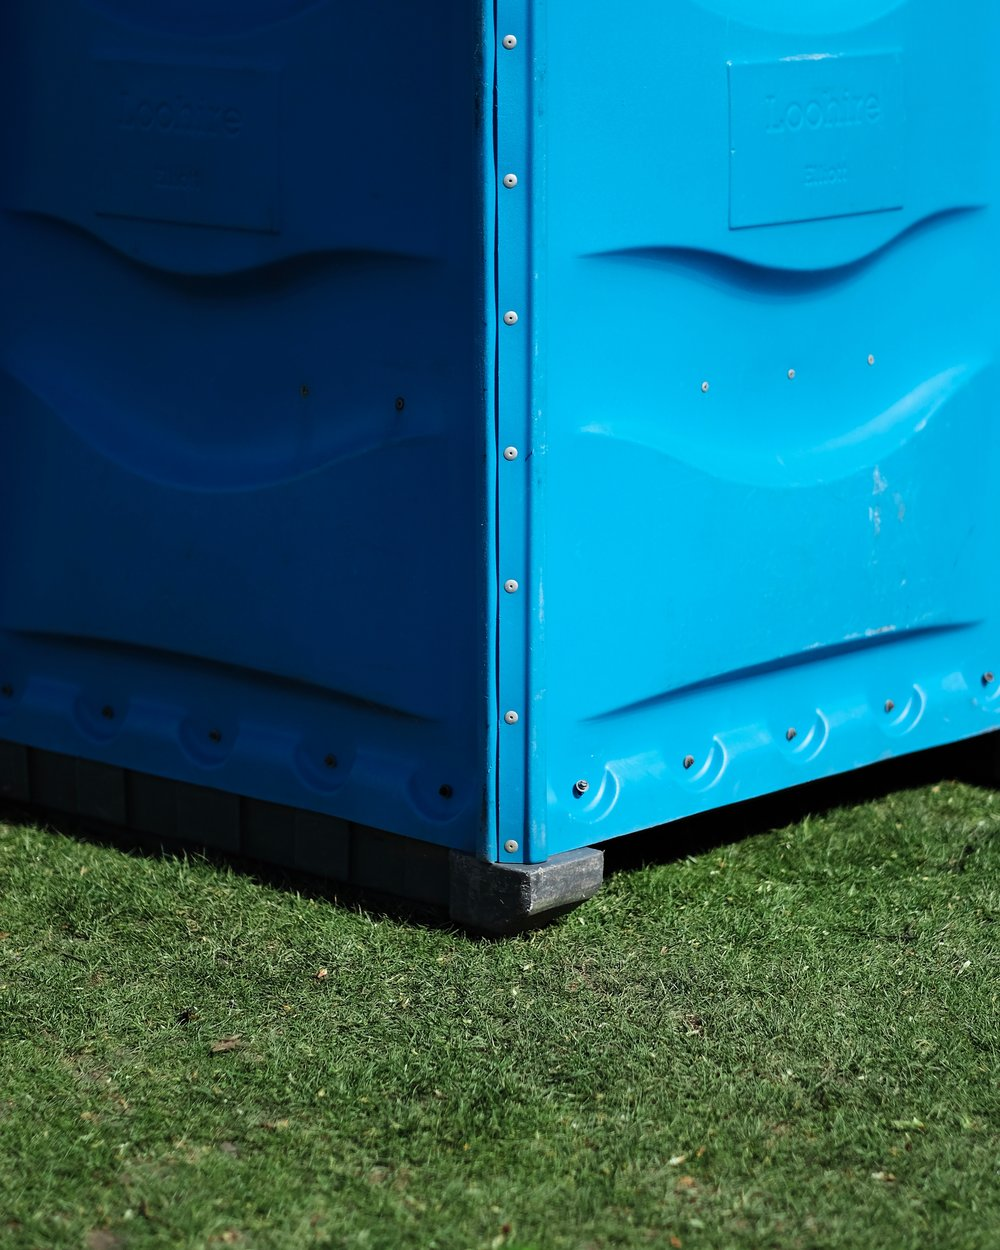 craig-whitehead-253939-unsplash Porta-potty.jpg